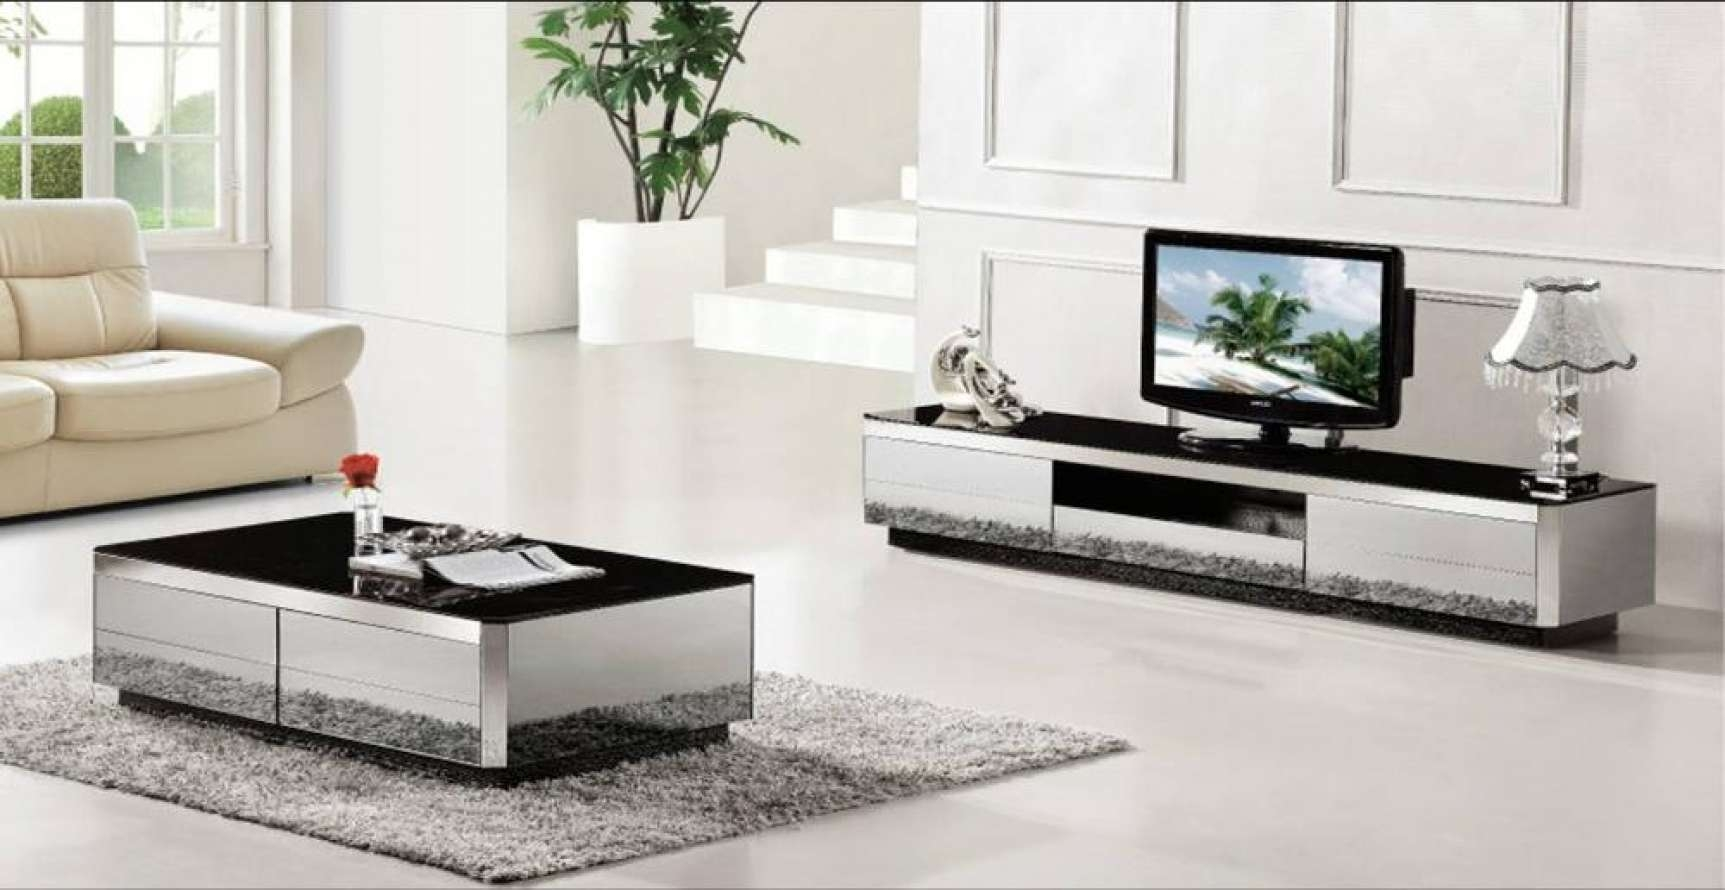 Tv Stand And Coffee Table Sets Tags : 96 Remarkable Tv Stand And Intended For Tv Cabinets And Coffee Table Sets (View 20 of 20)